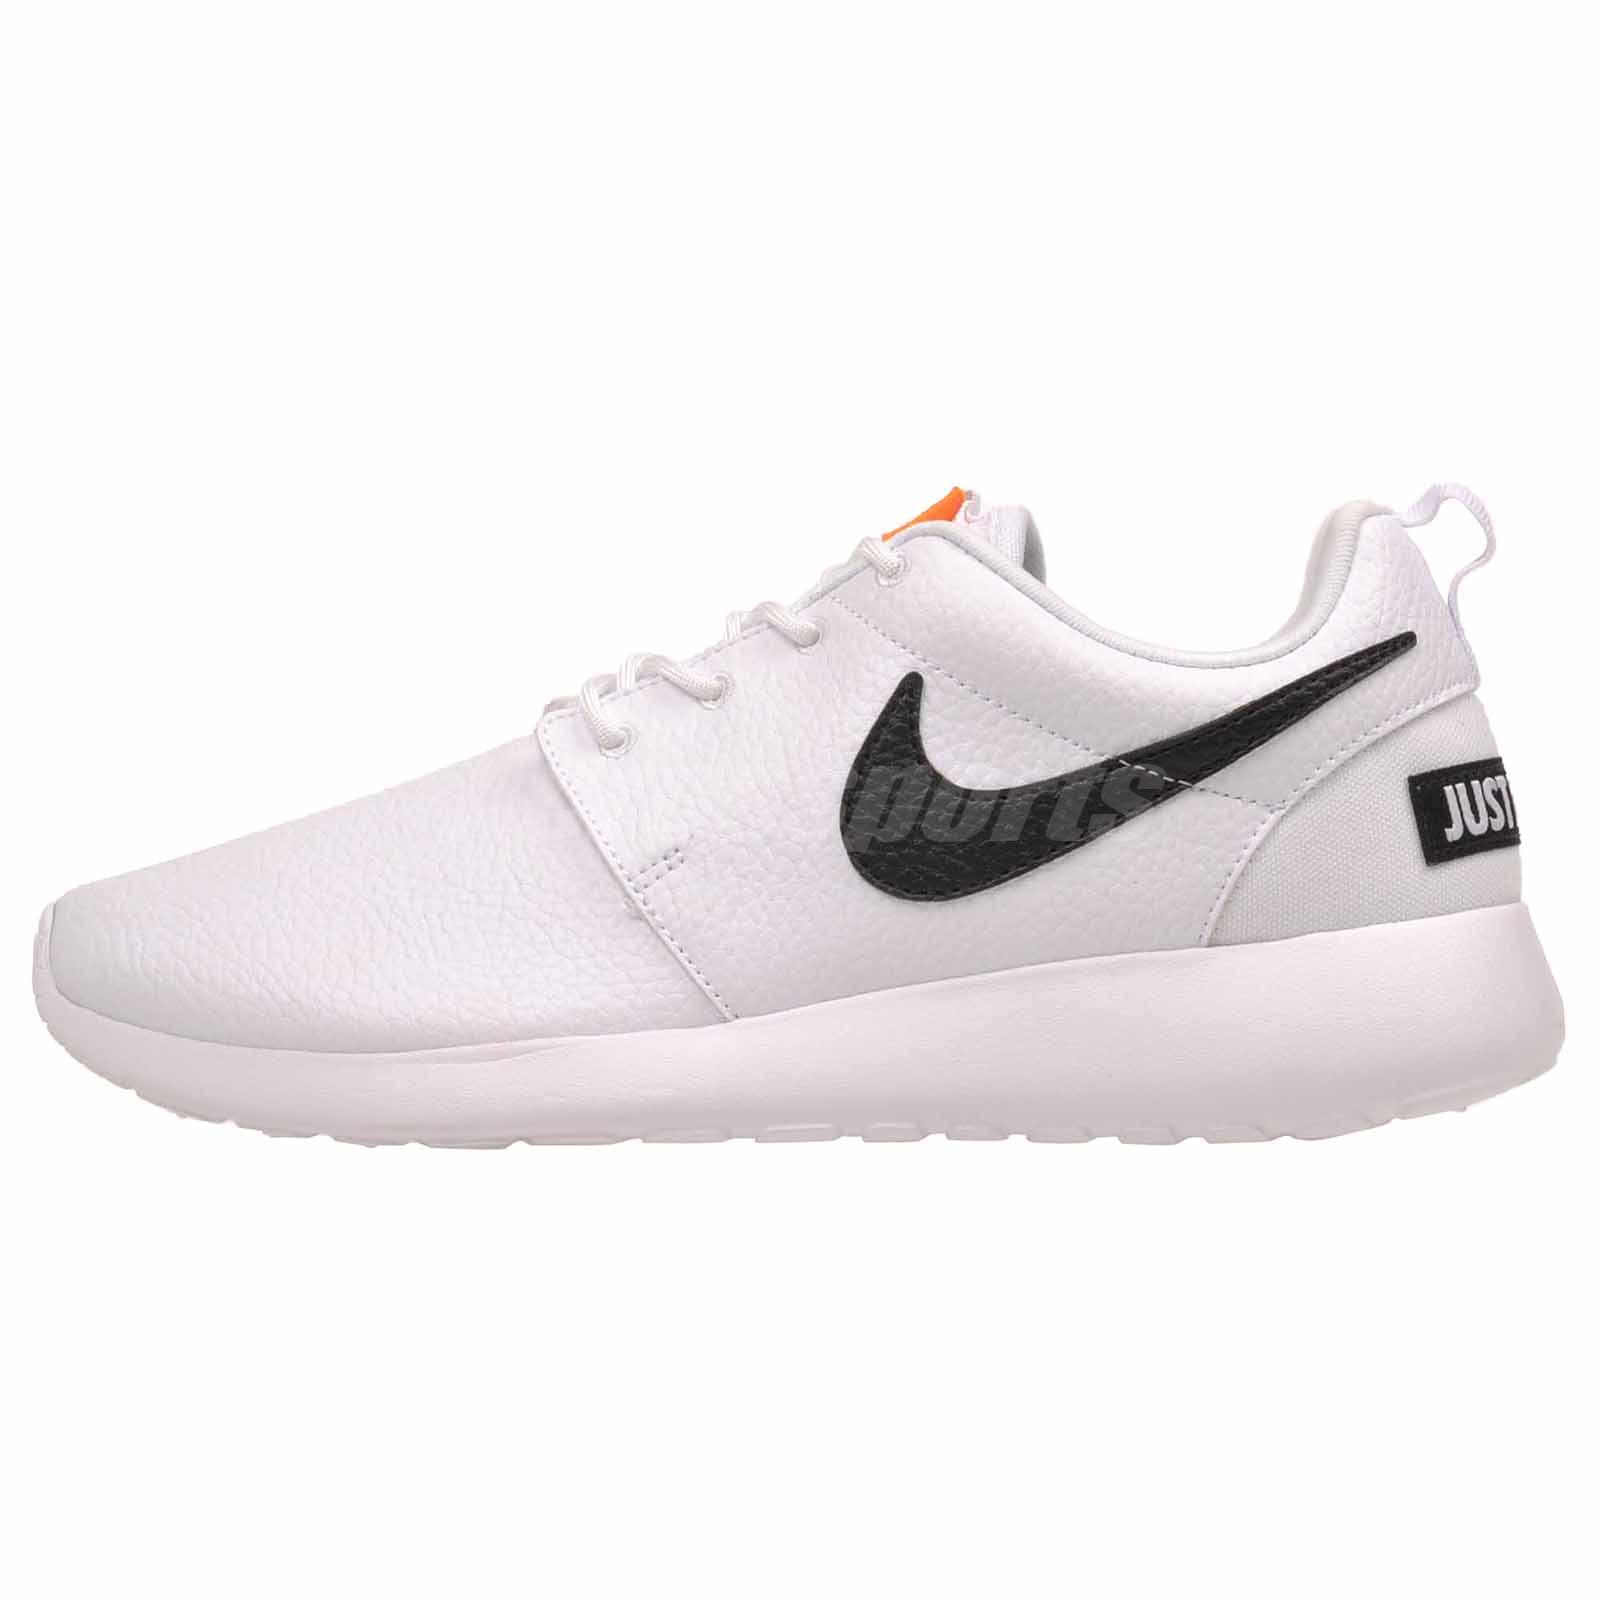 ee344ef2a8d6b Details about Nike Wmns Roshe One PRM Running Womens Premium Shoes NWOB  White Black 833928-104